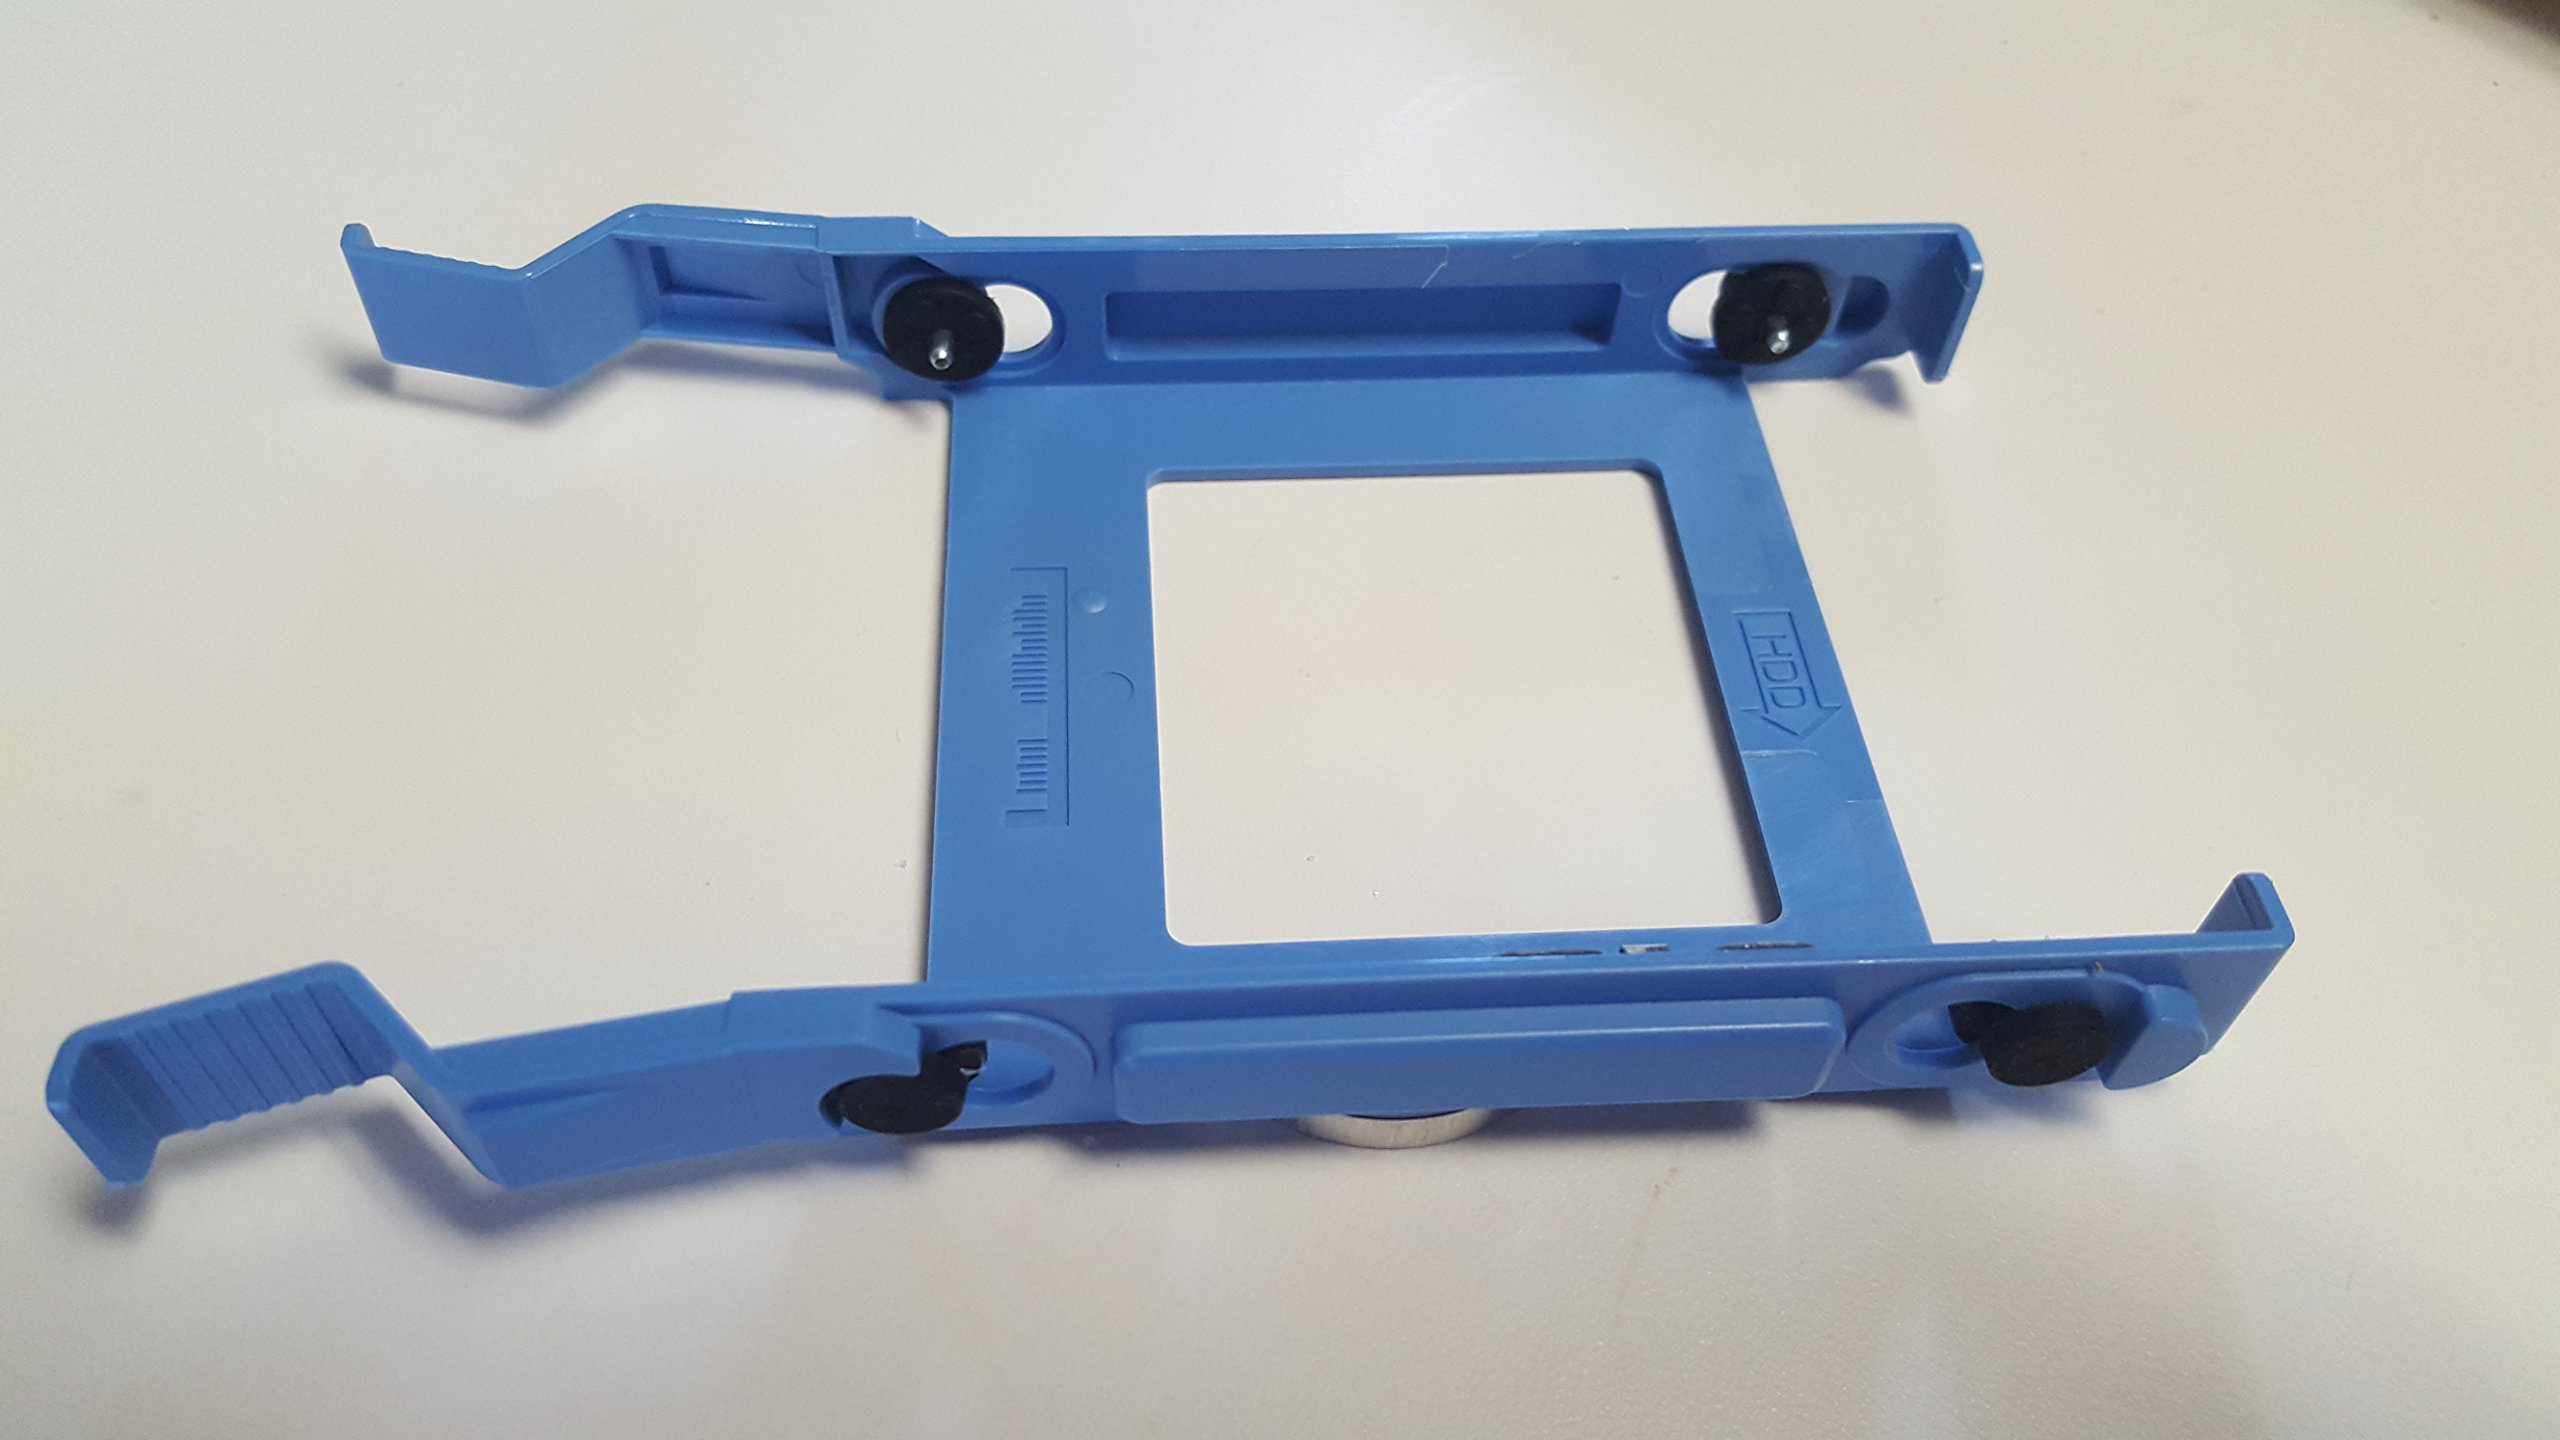 DELL X9FV3 OEM 2.5'' SSD/HDD Hard Drive Bracket Tray Adapter - for Dell OptiPlex 3040 5040 7040 MT Inspiron Vostro 3600 3650